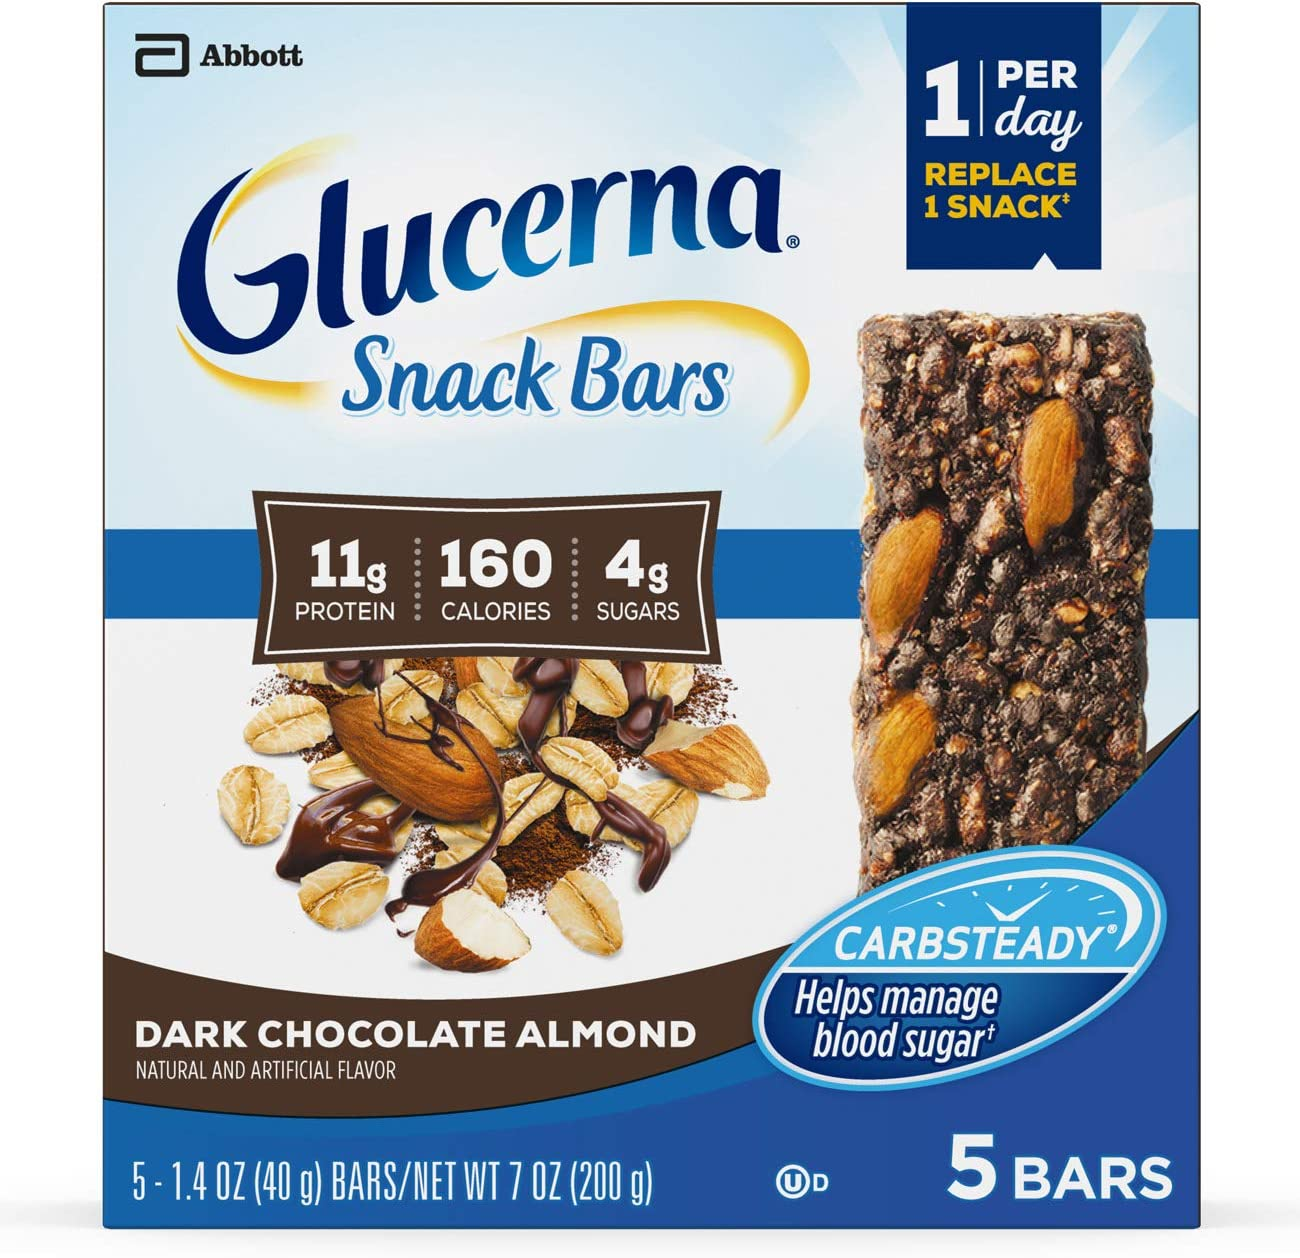 Glucerna Snack Bars, To Help Manage Blood Sugar, Diabetes Snack Replacement, Dark Chocolate Almond, 1.41-Oz bar, 20 Count